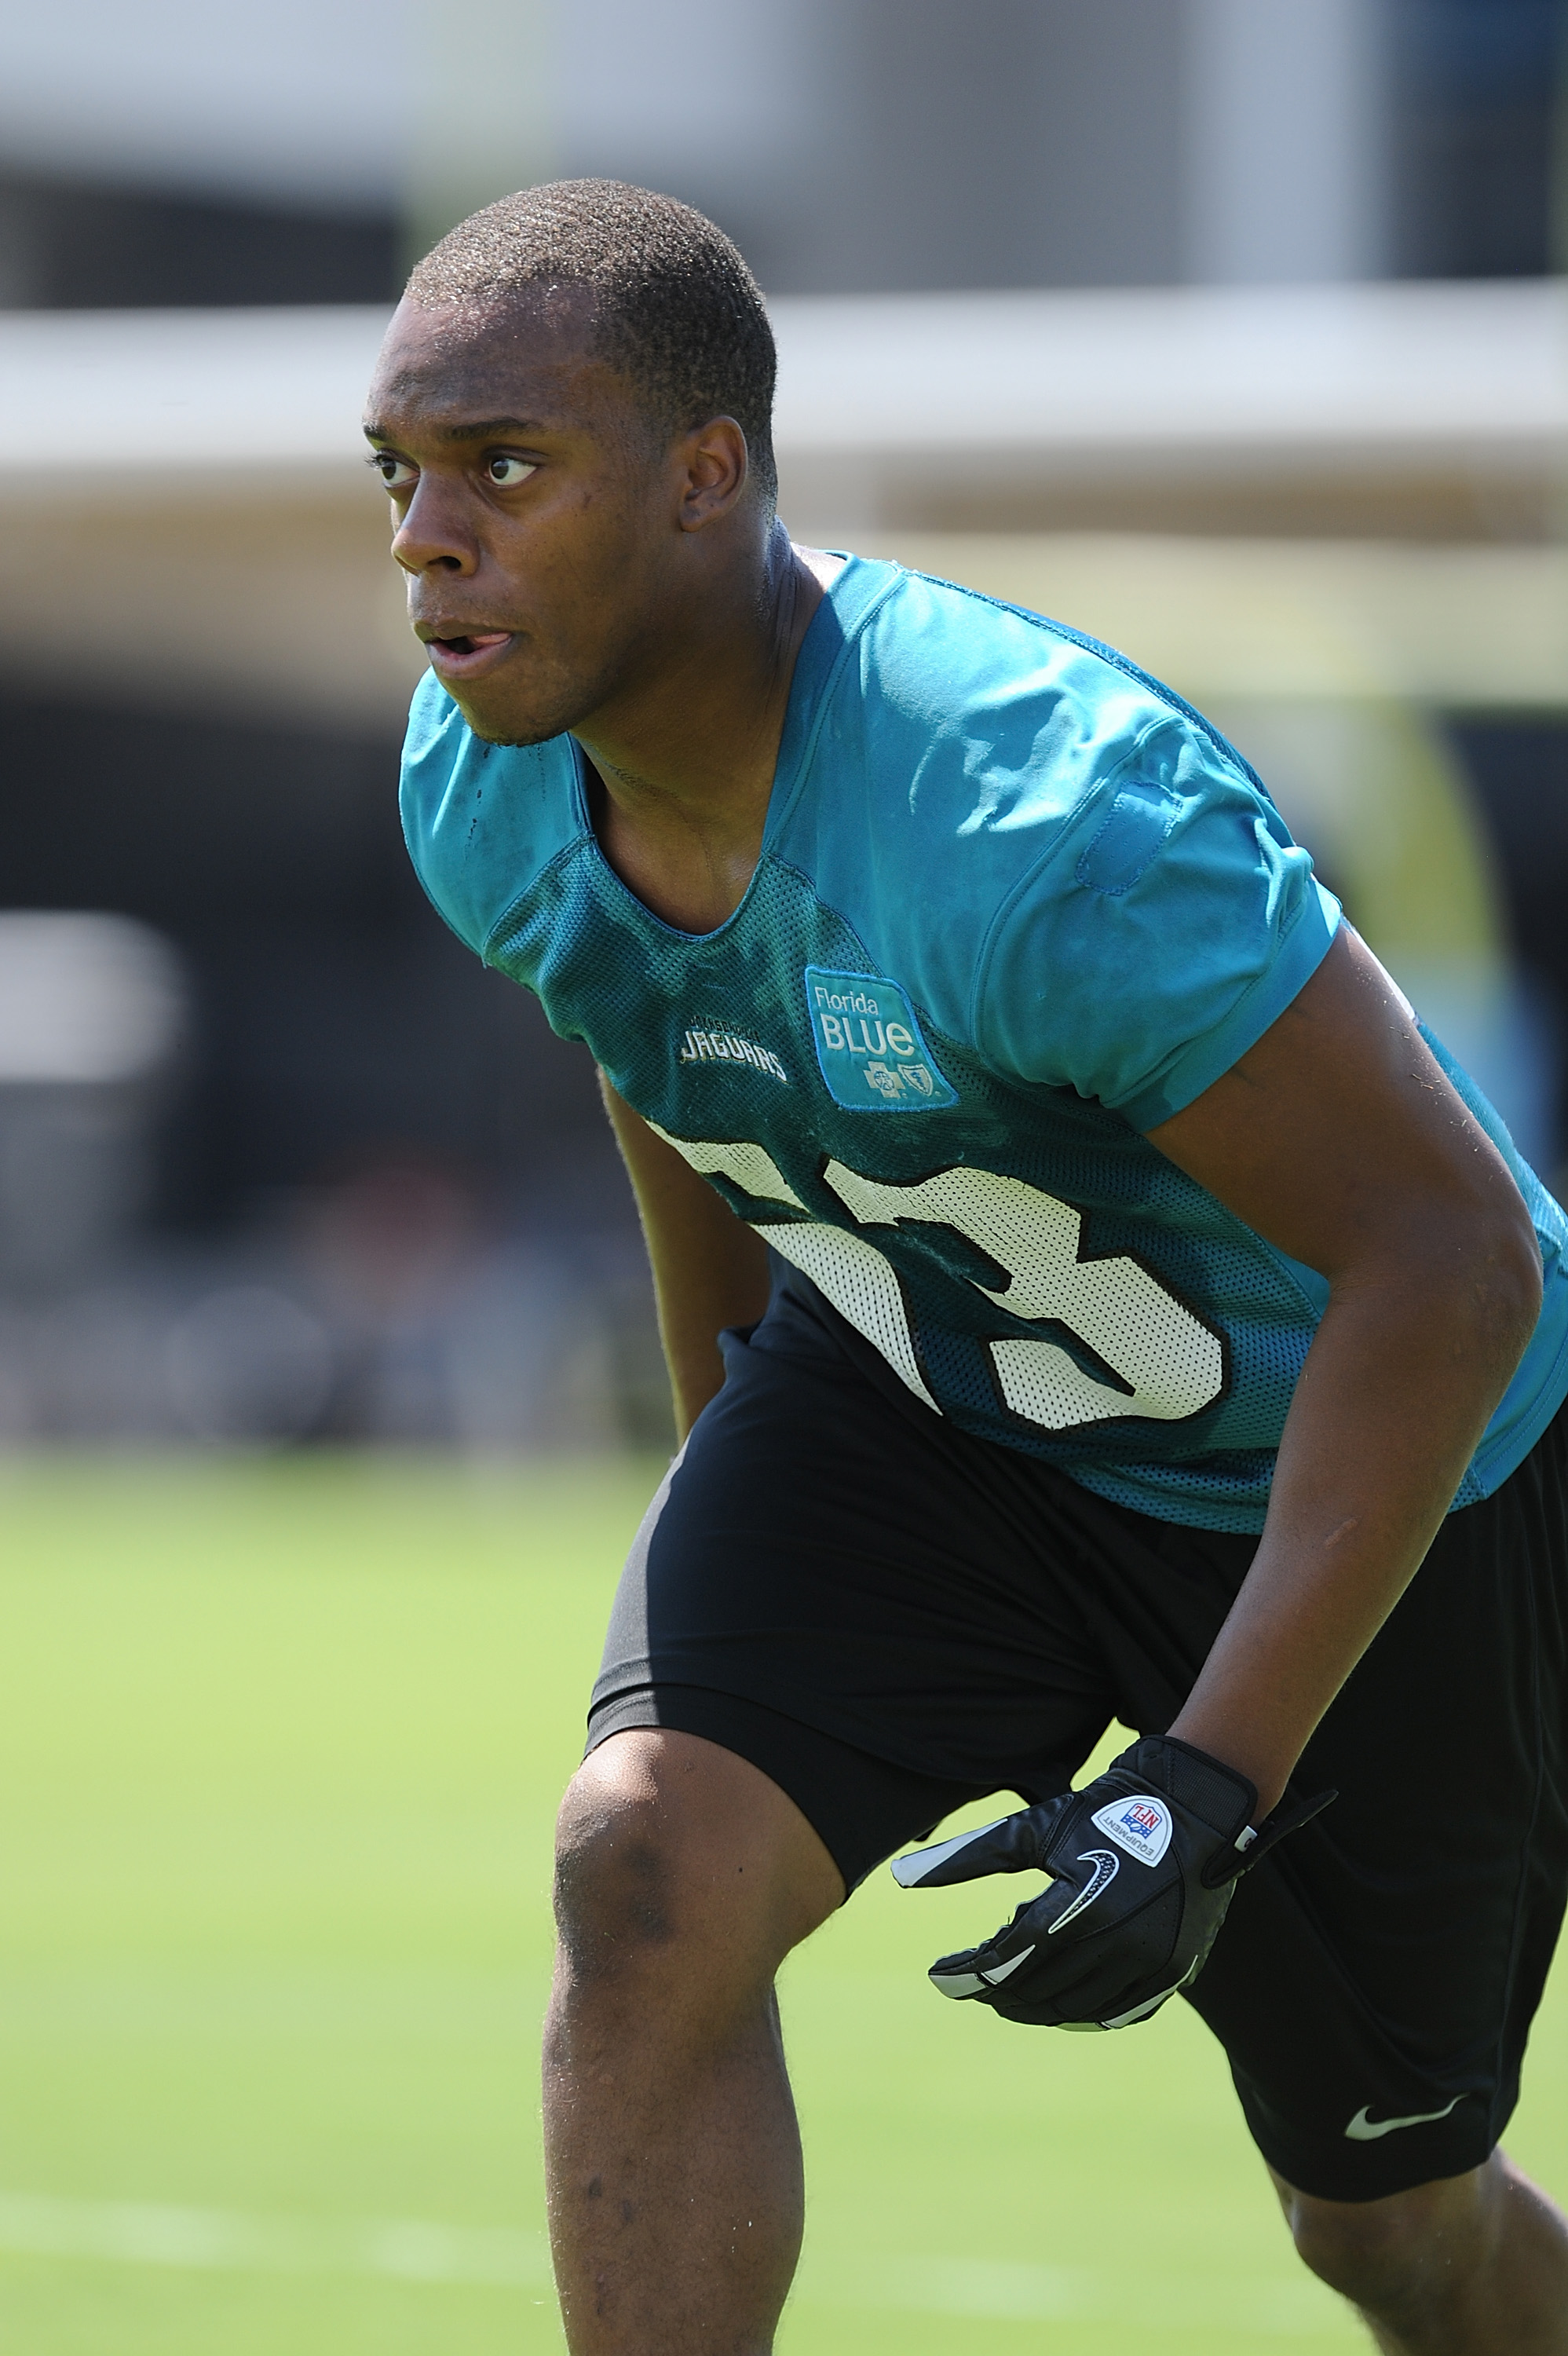 Linebacker Brandon Marshall during Jacksonville Jaguars Minicamp at EverBank Field on May 5, 2012 in Jacksonville, Florida. (credit: Rick Dole/Getty Images)